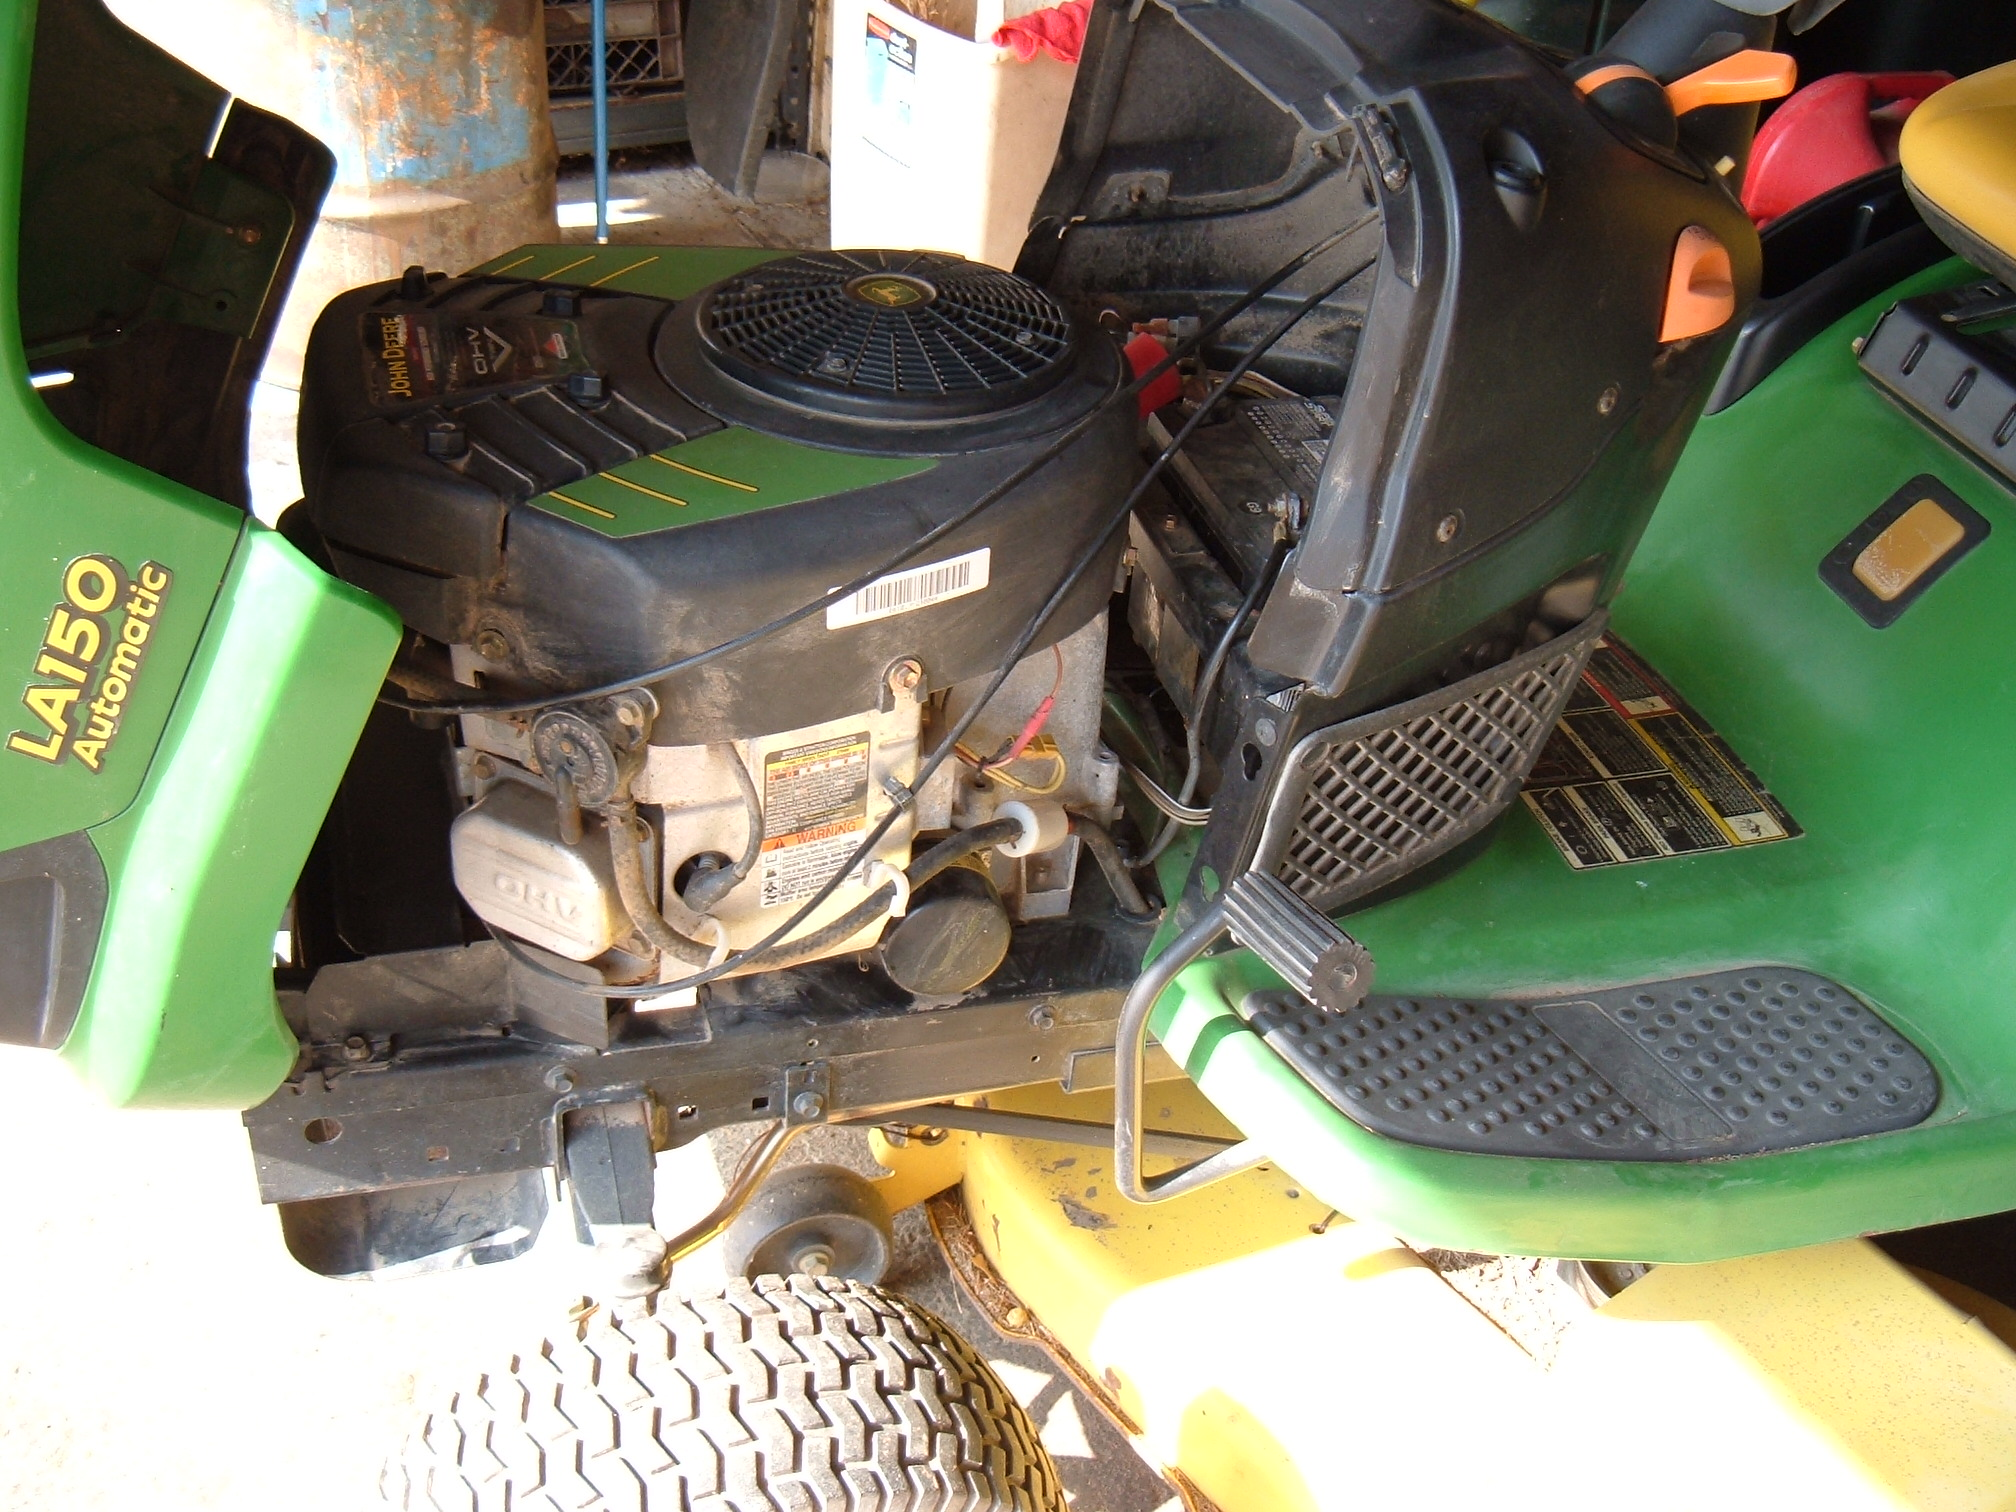 2014 03 08_194020_dscf1005 i have a deere la145 with about 130 hours at the end of the last john deere la145 wiring harness at crackthecode.co